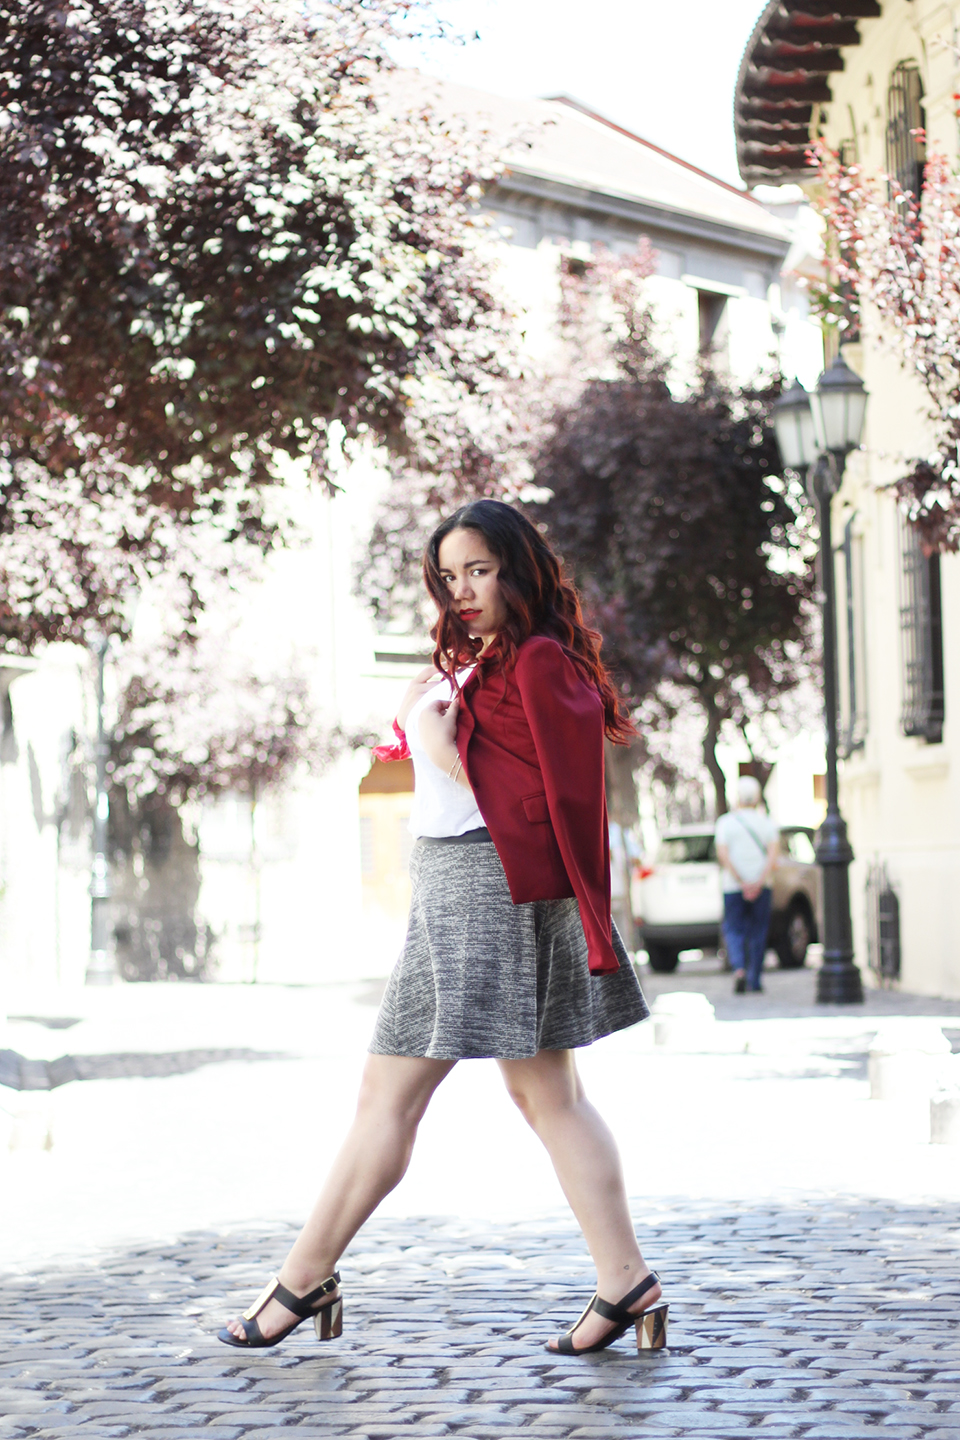 christmas-look-merry-holidays-h&m-dafiti-chile-street-style-summer-blazer-red-skirt